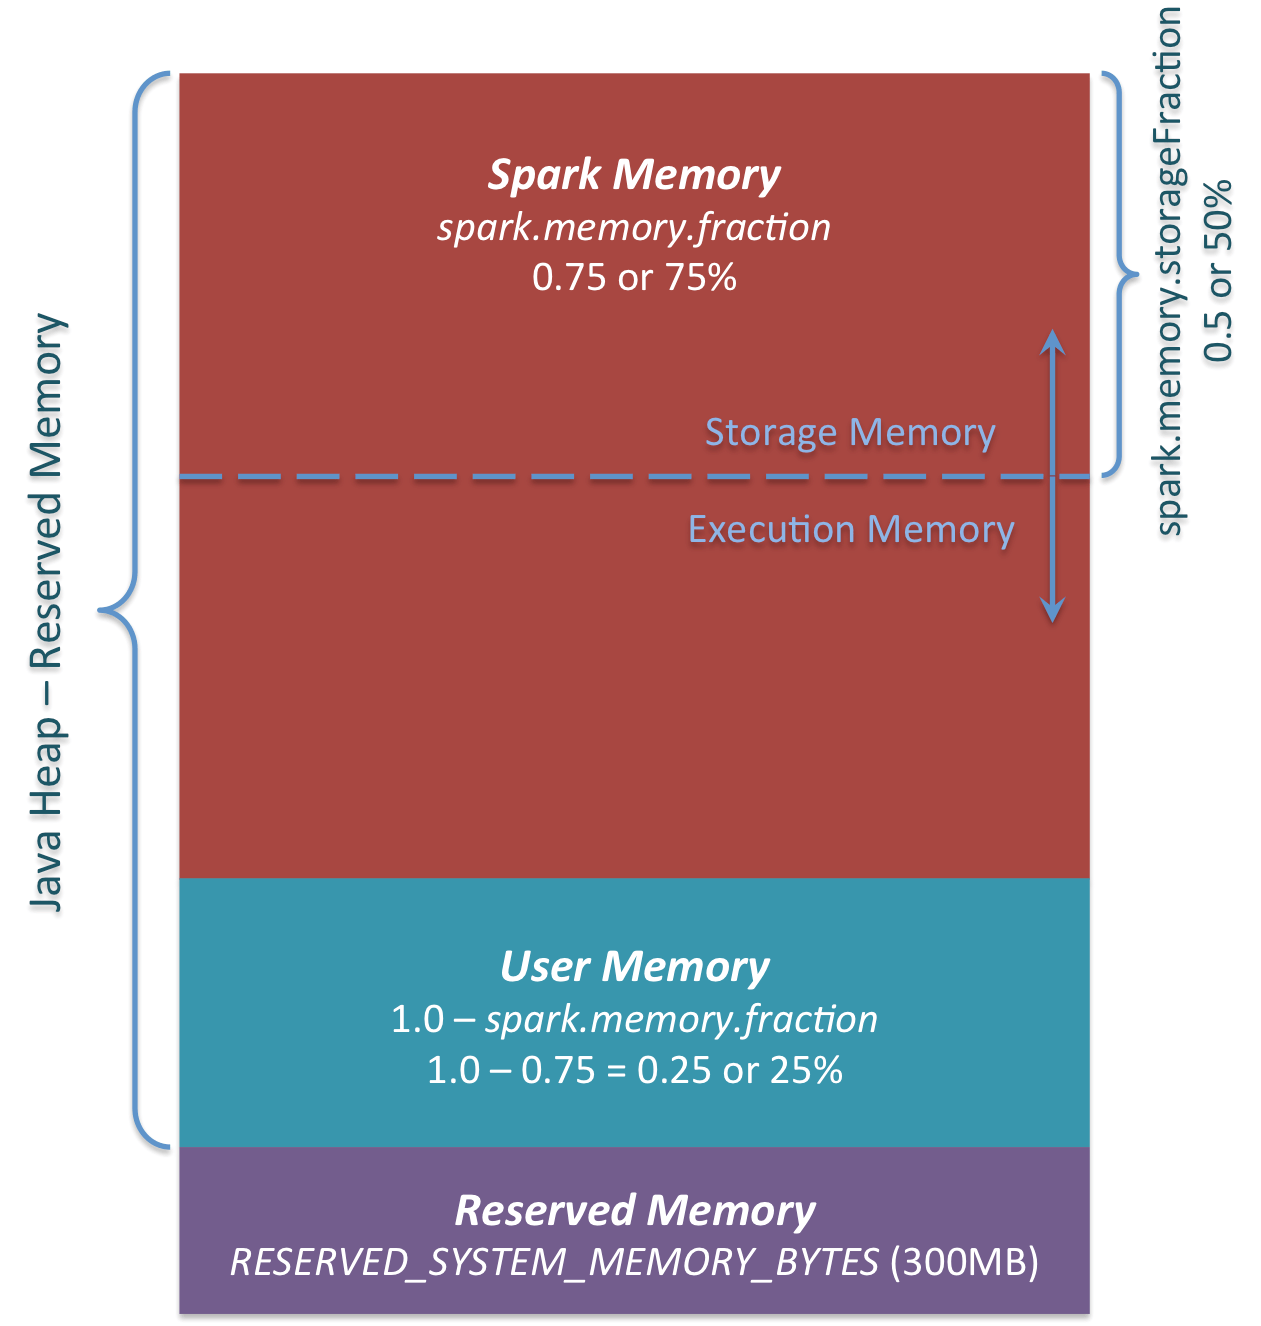 Spark Memory Management | Distributed Systems Architecture